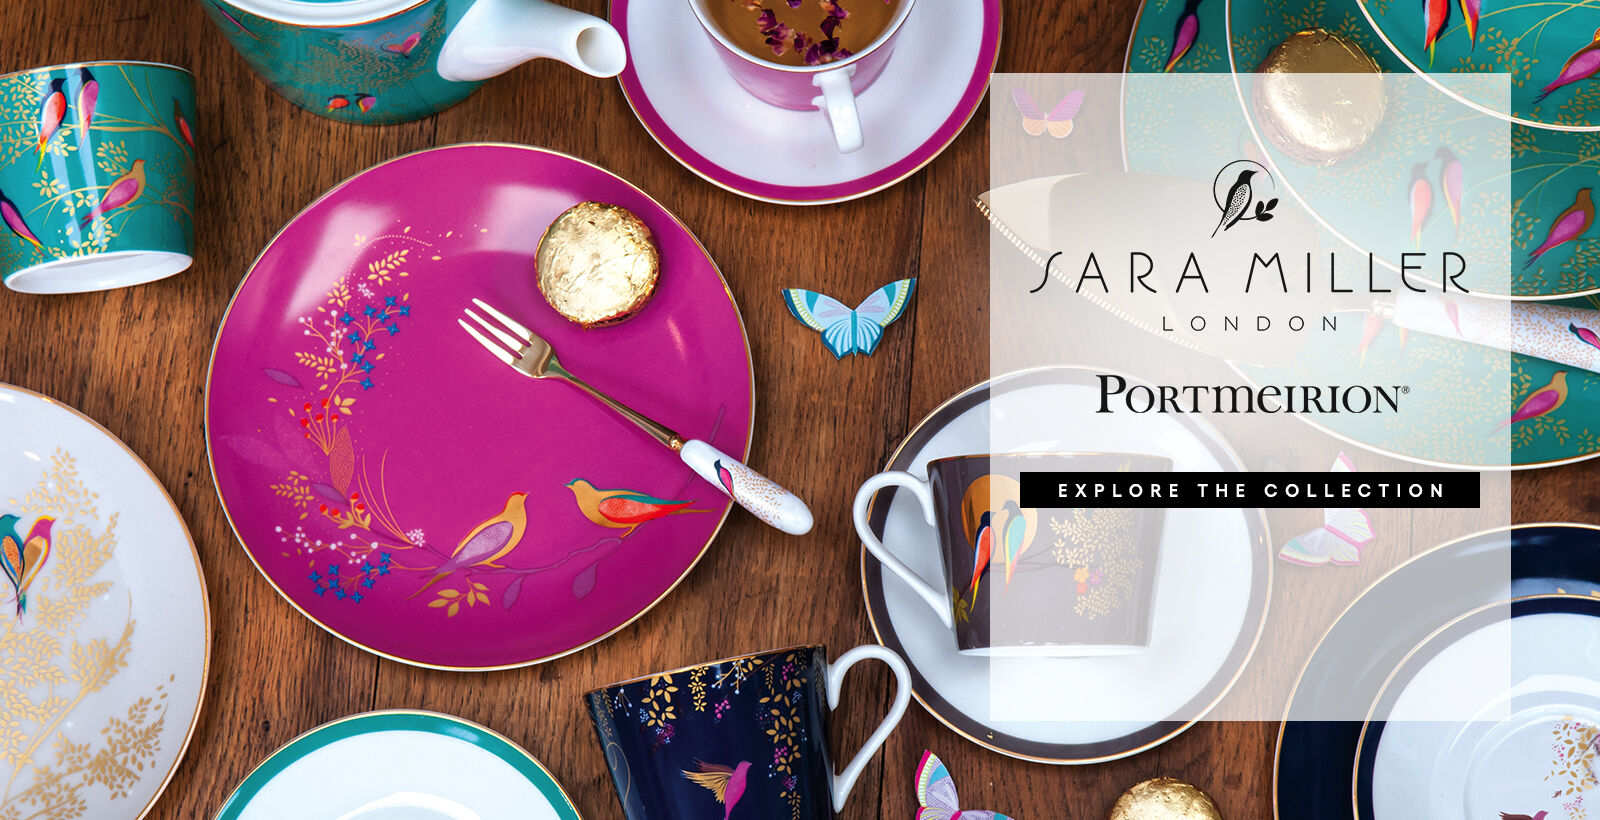 Sara Miller for Portmeirion Collection